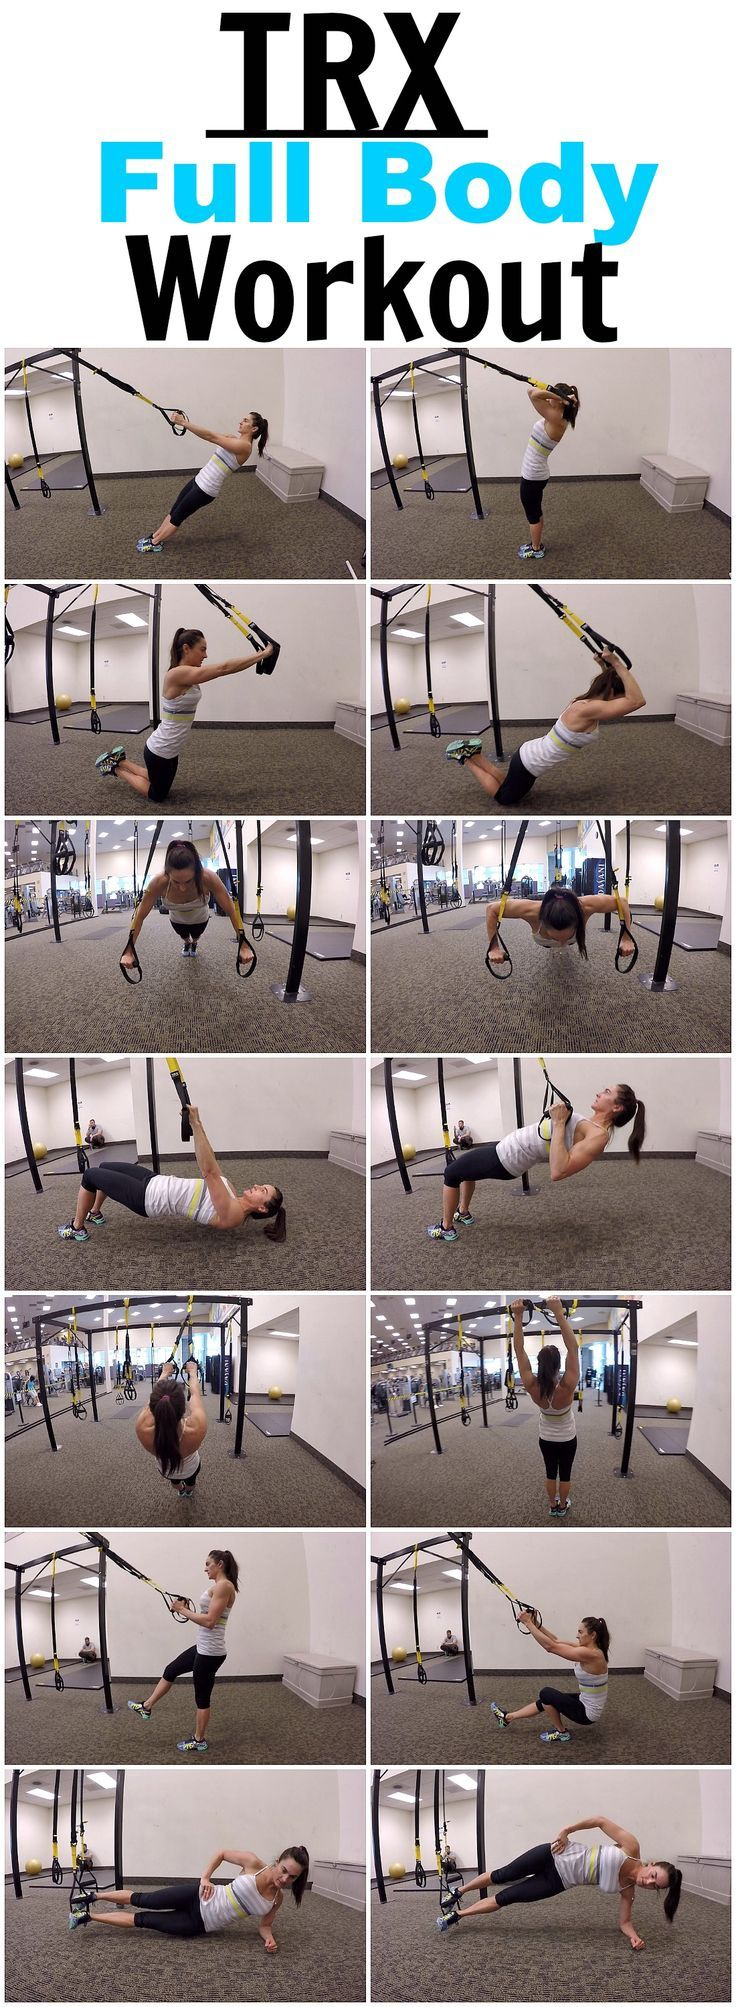 7 Exercises for a full body TRX workout!   find more relevant stuff: victoriajohnson.wordpress.com